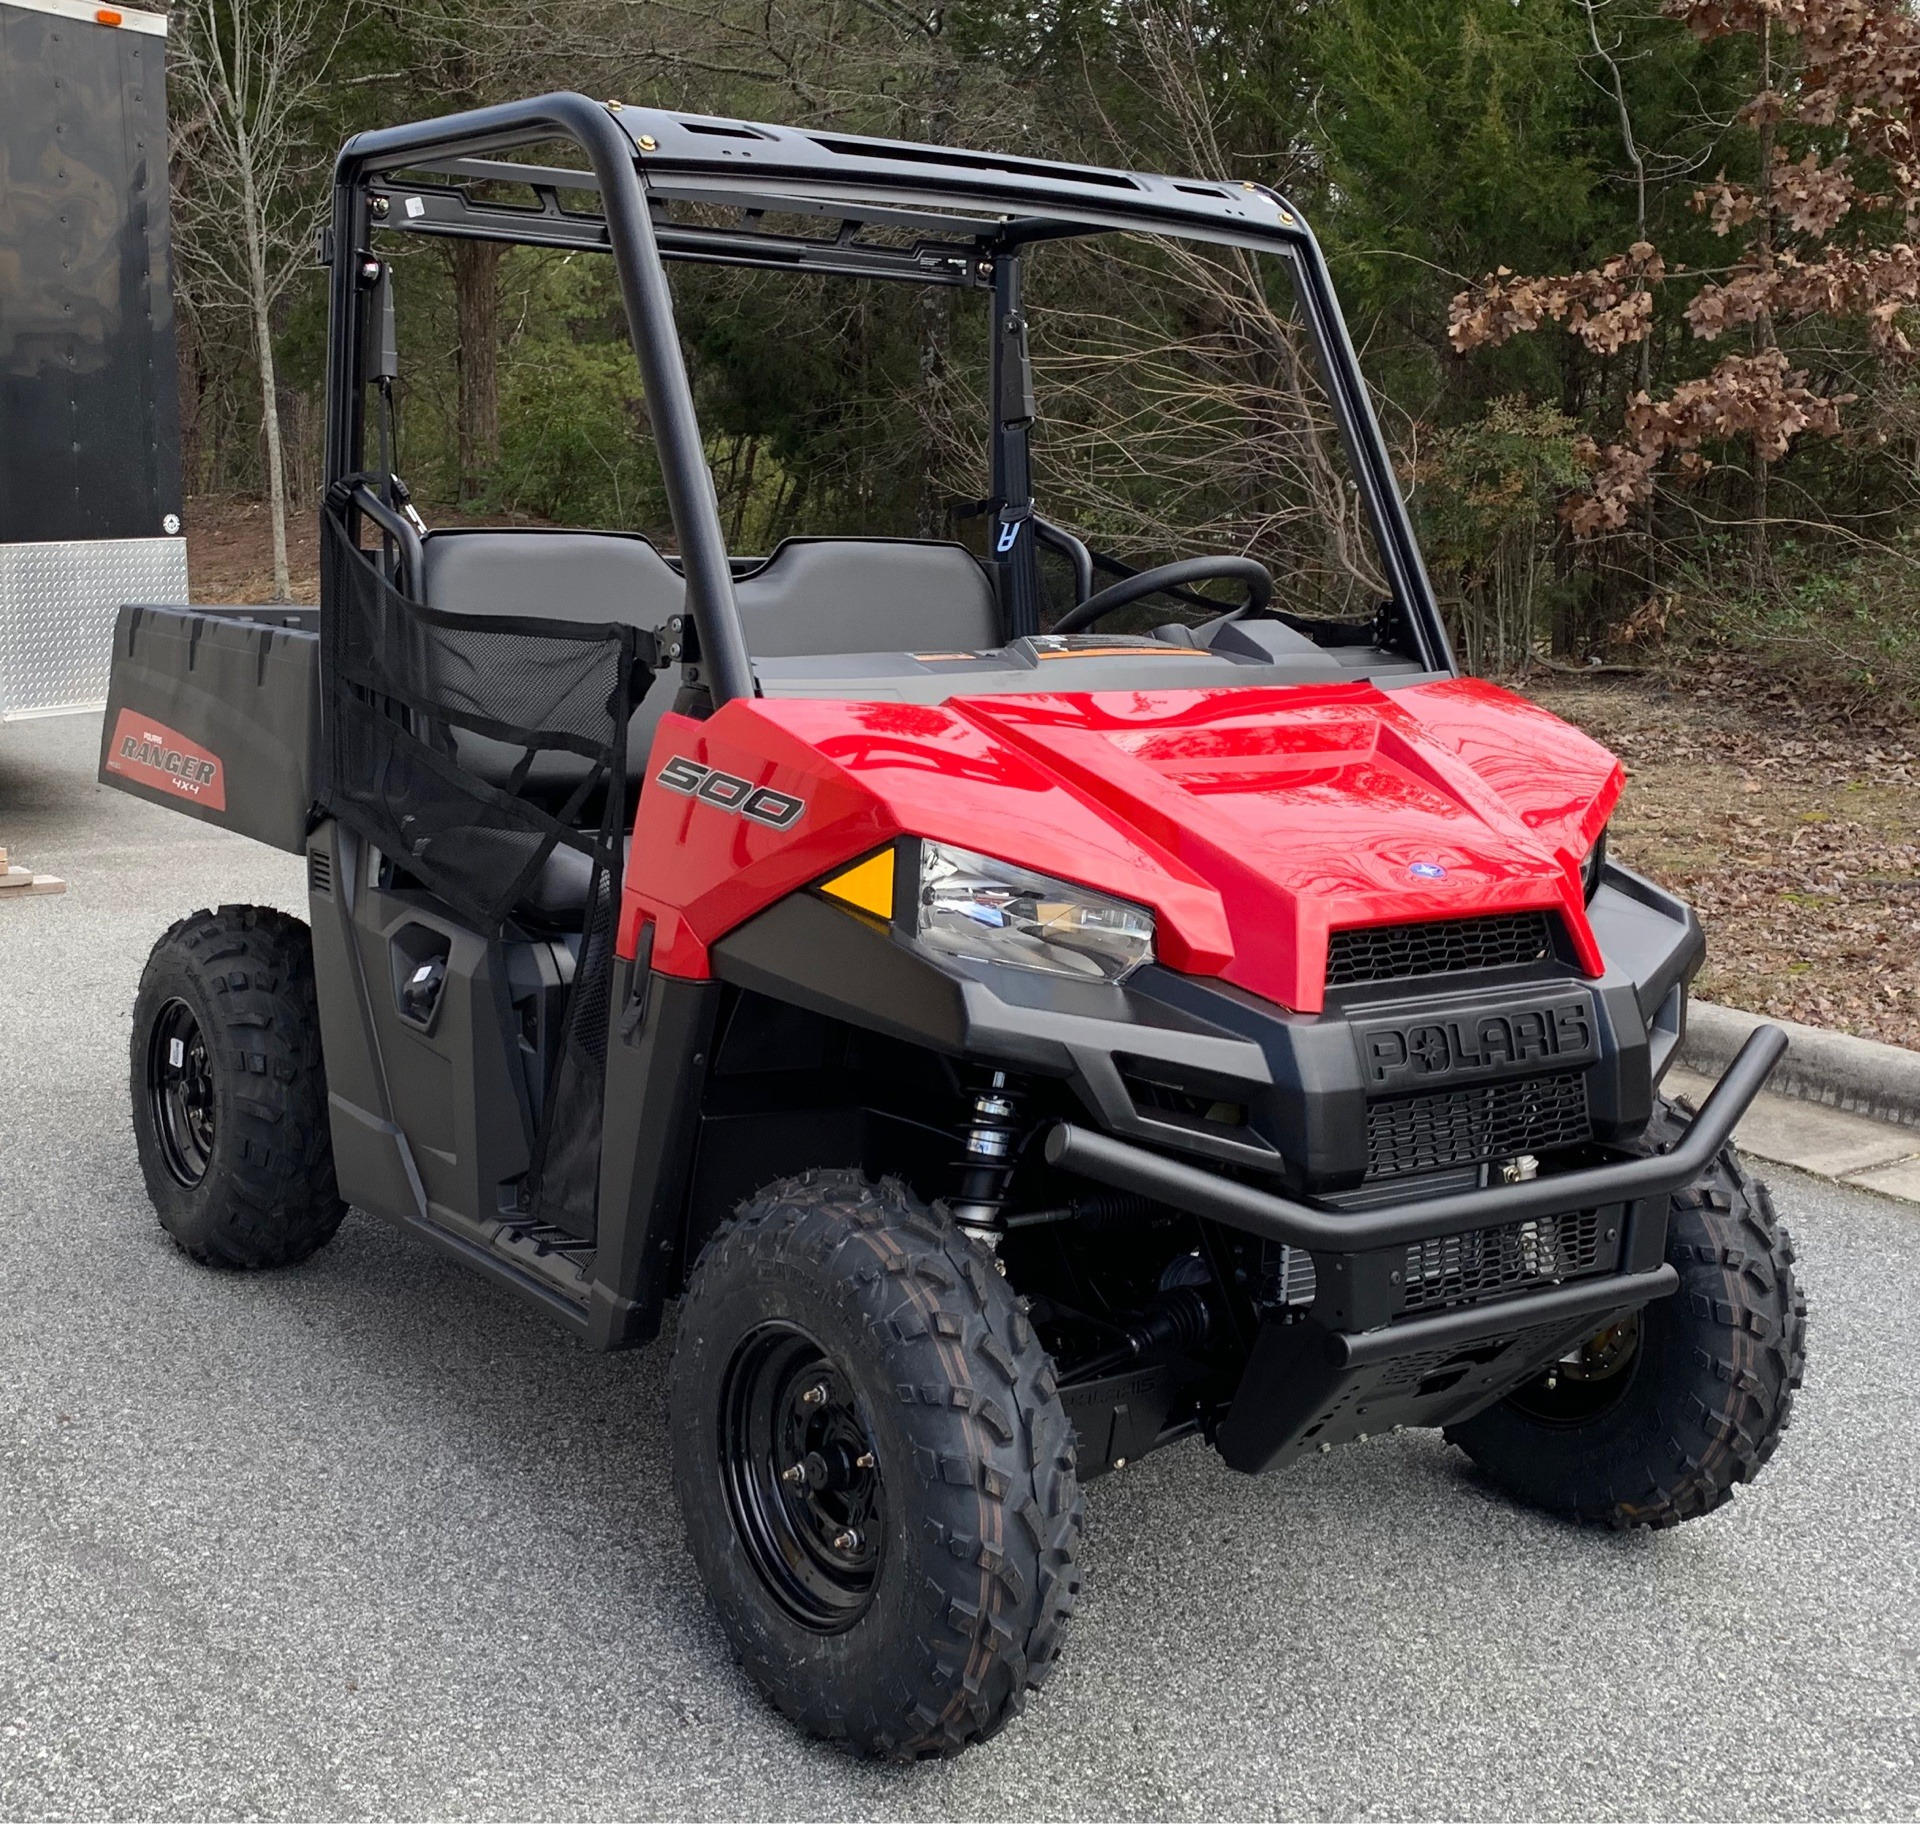 2019 Polaris Ranger 500 in High Point, North Carolina - Photo 1